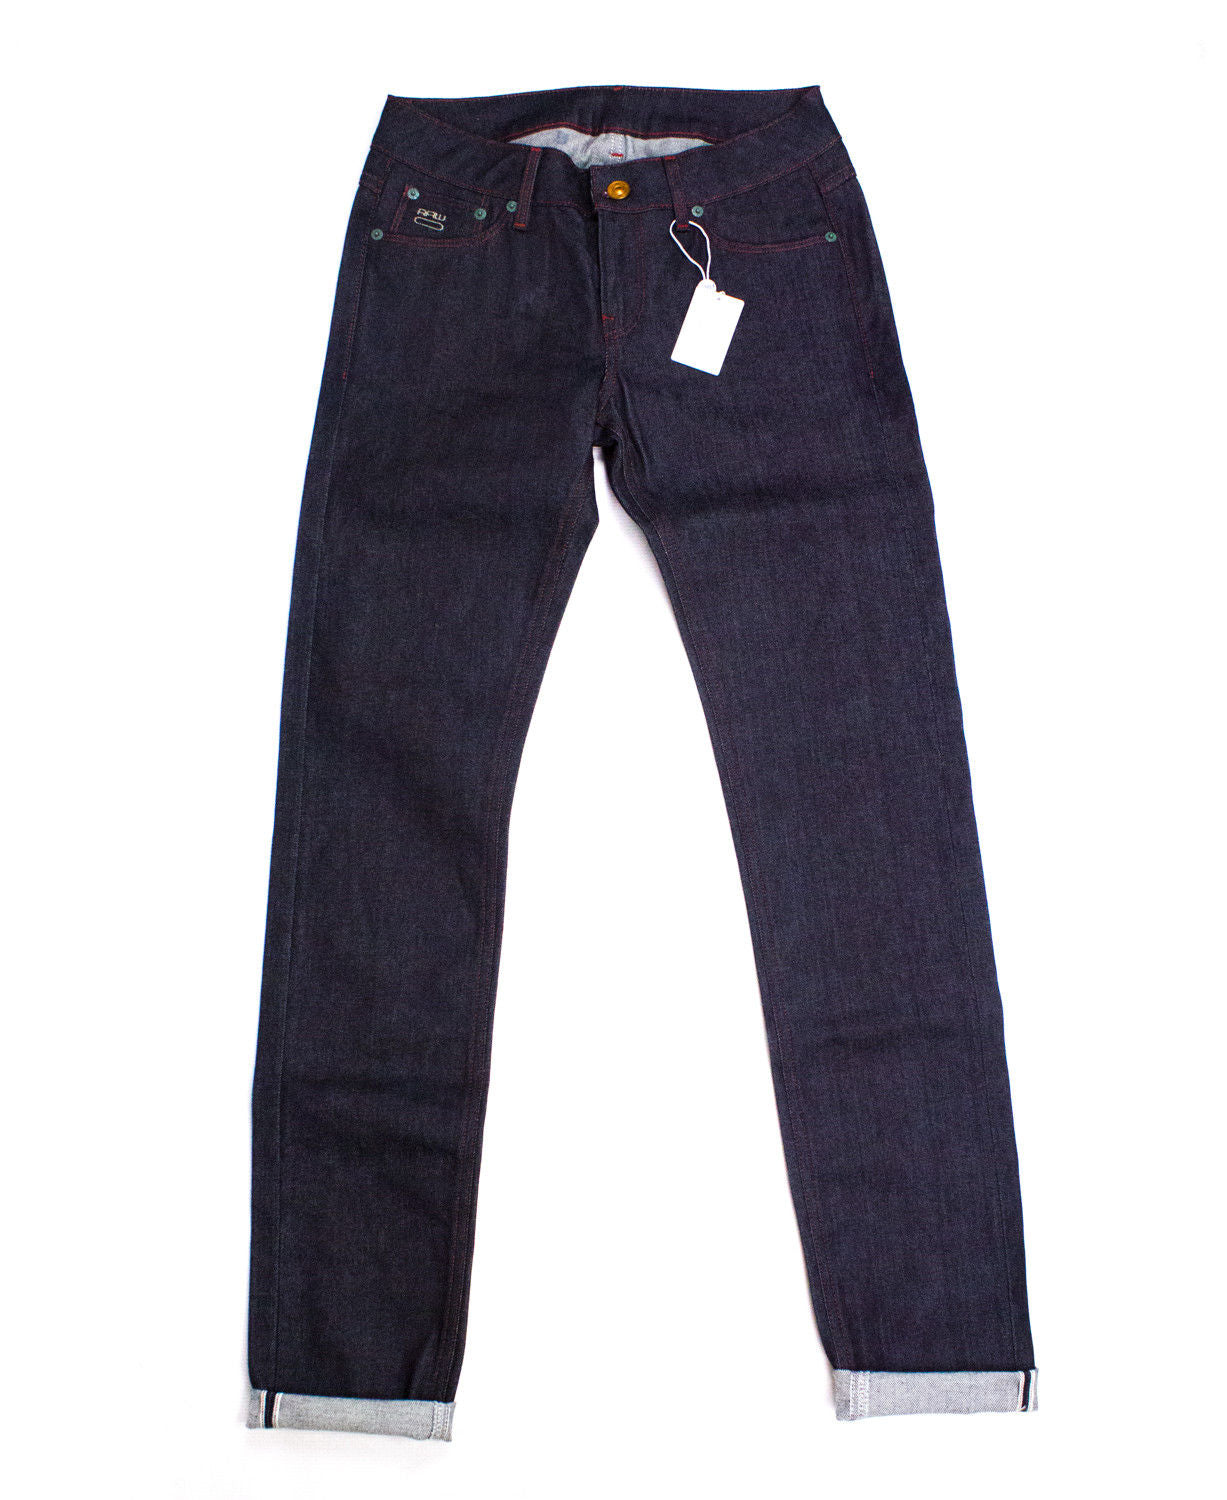 G-STAR RAW 3301 Skinny S.E. Selvedge Jeans SIZE 28/34 - secondfirst